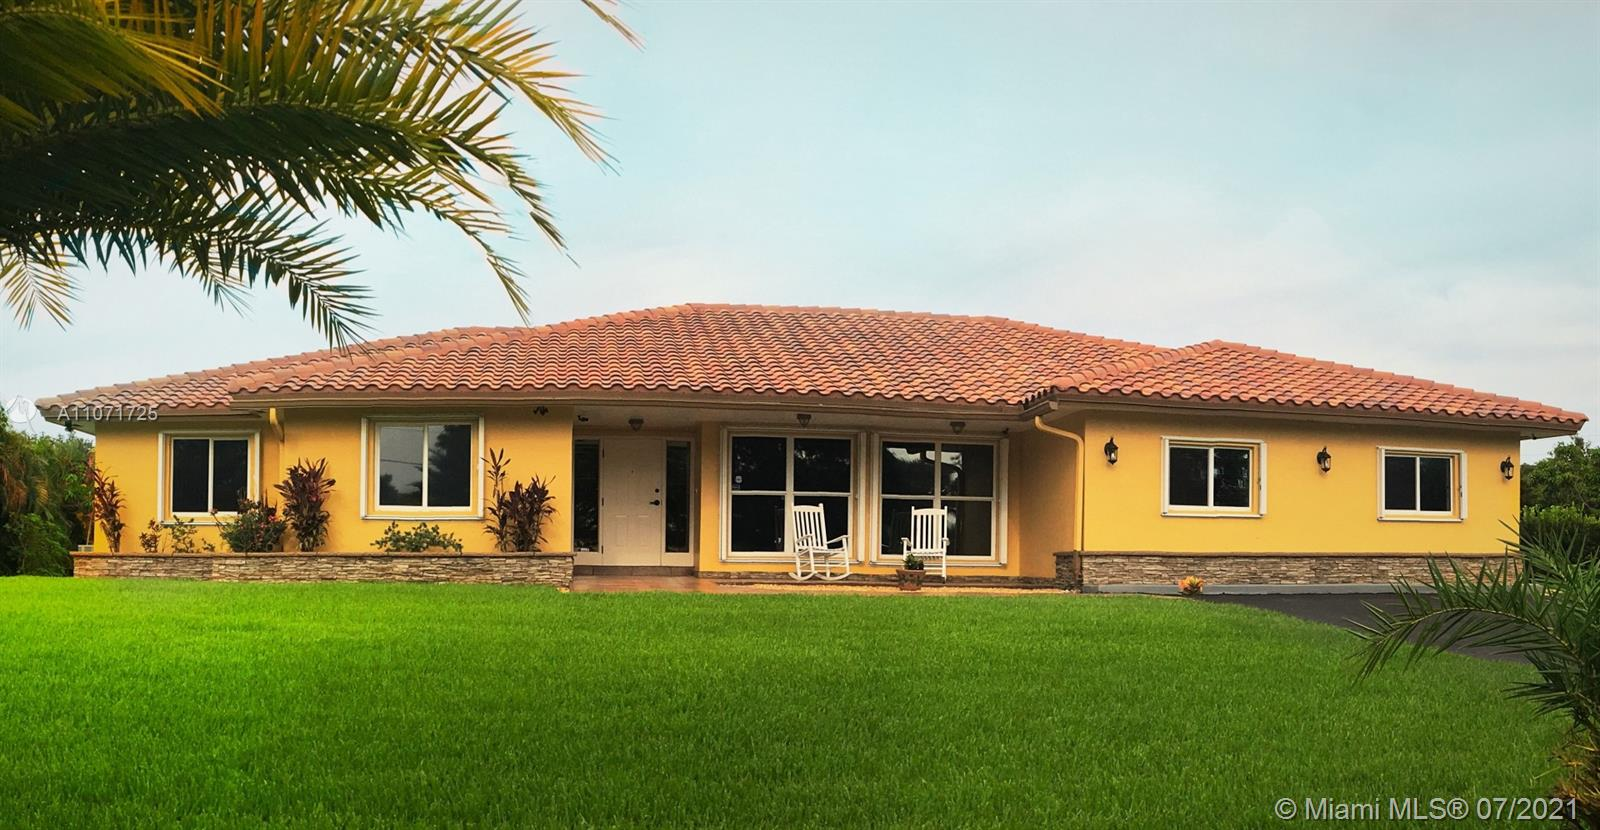 5920 SW 164th Ter, Southwest Ranches, Florida 33331